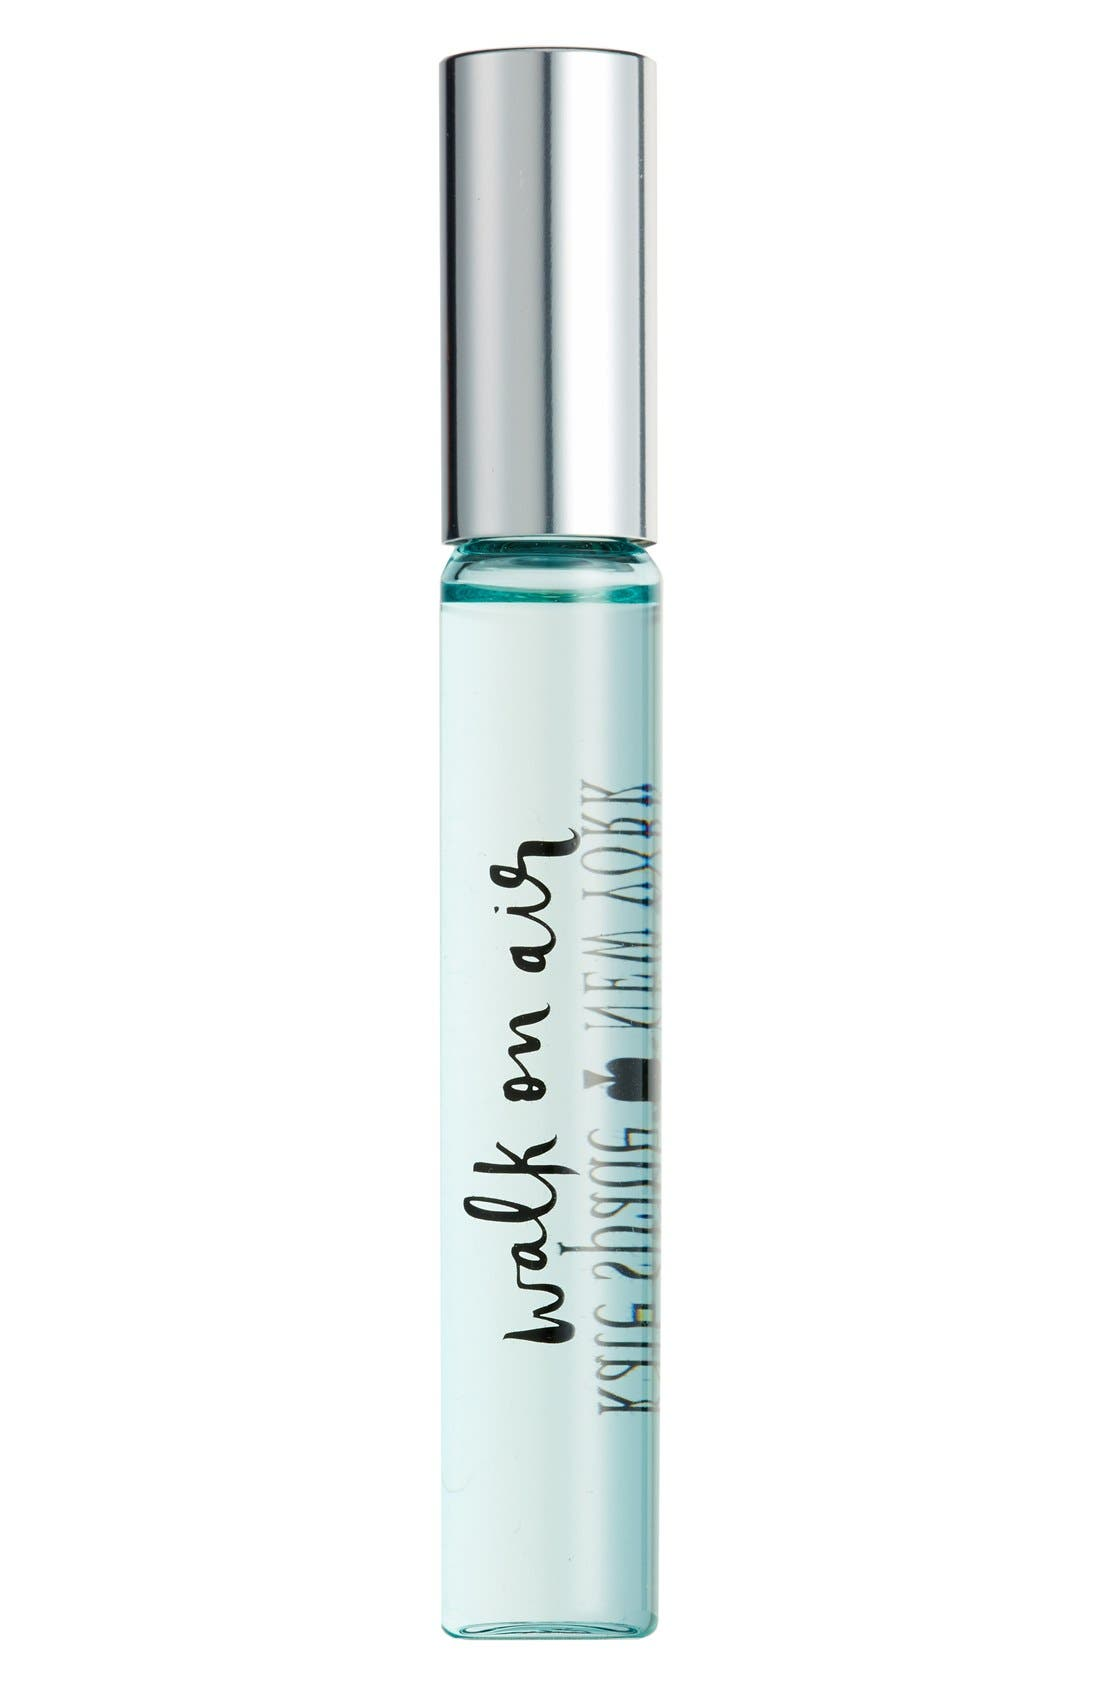 kate spade new york 'walk on air' eau de parfum rollerball